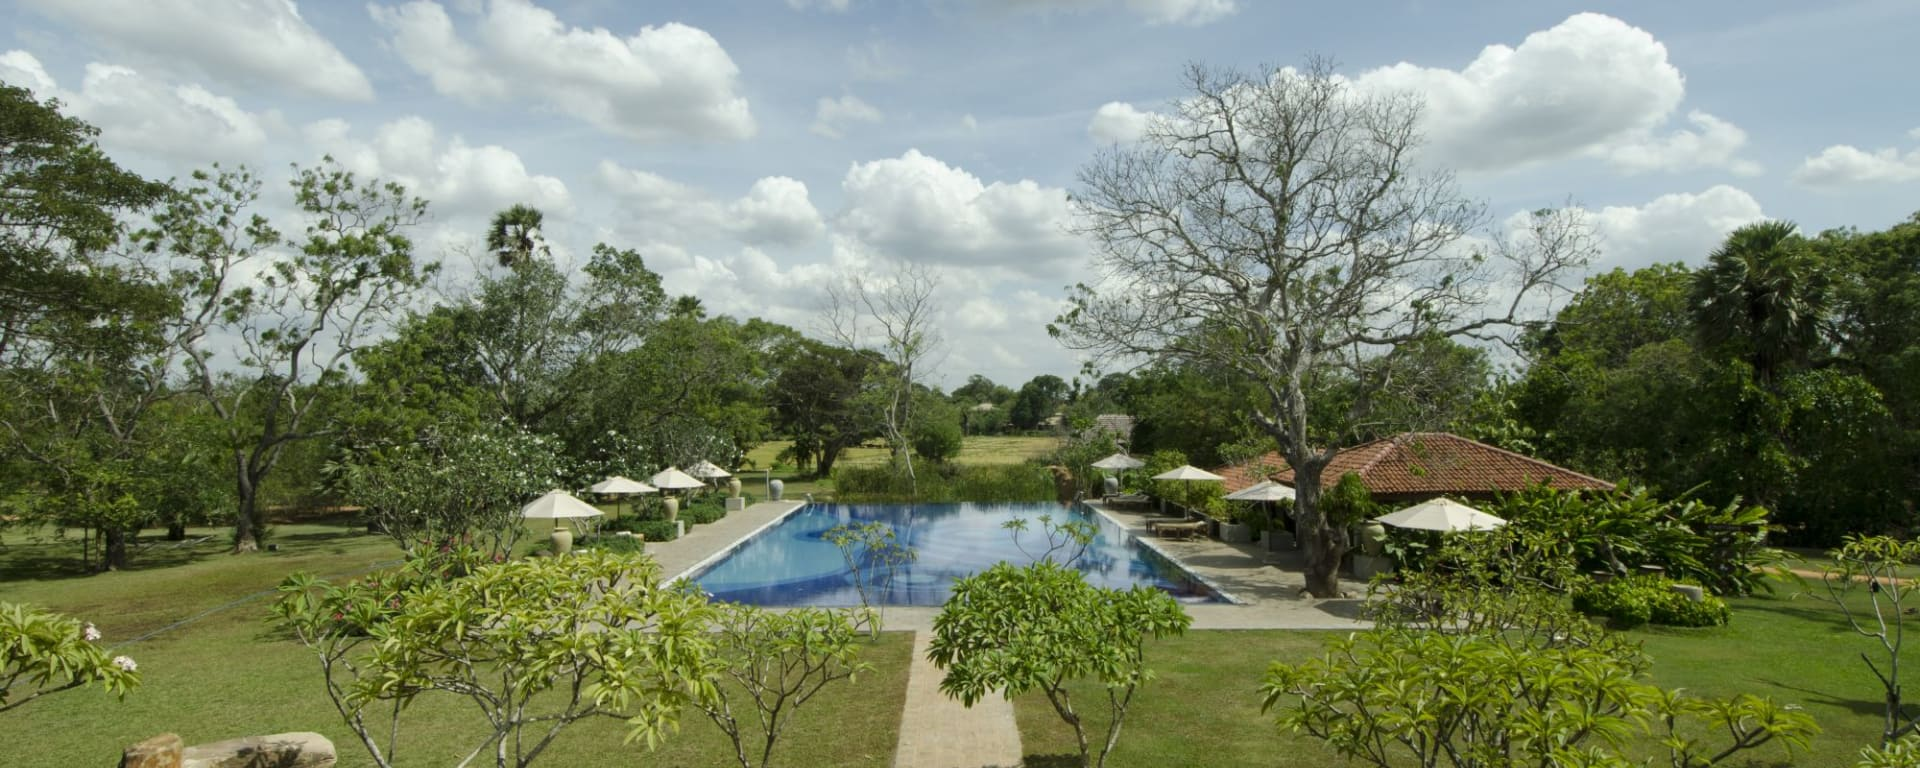 Ulagalla by Uga Escapes in Anuradhapura: